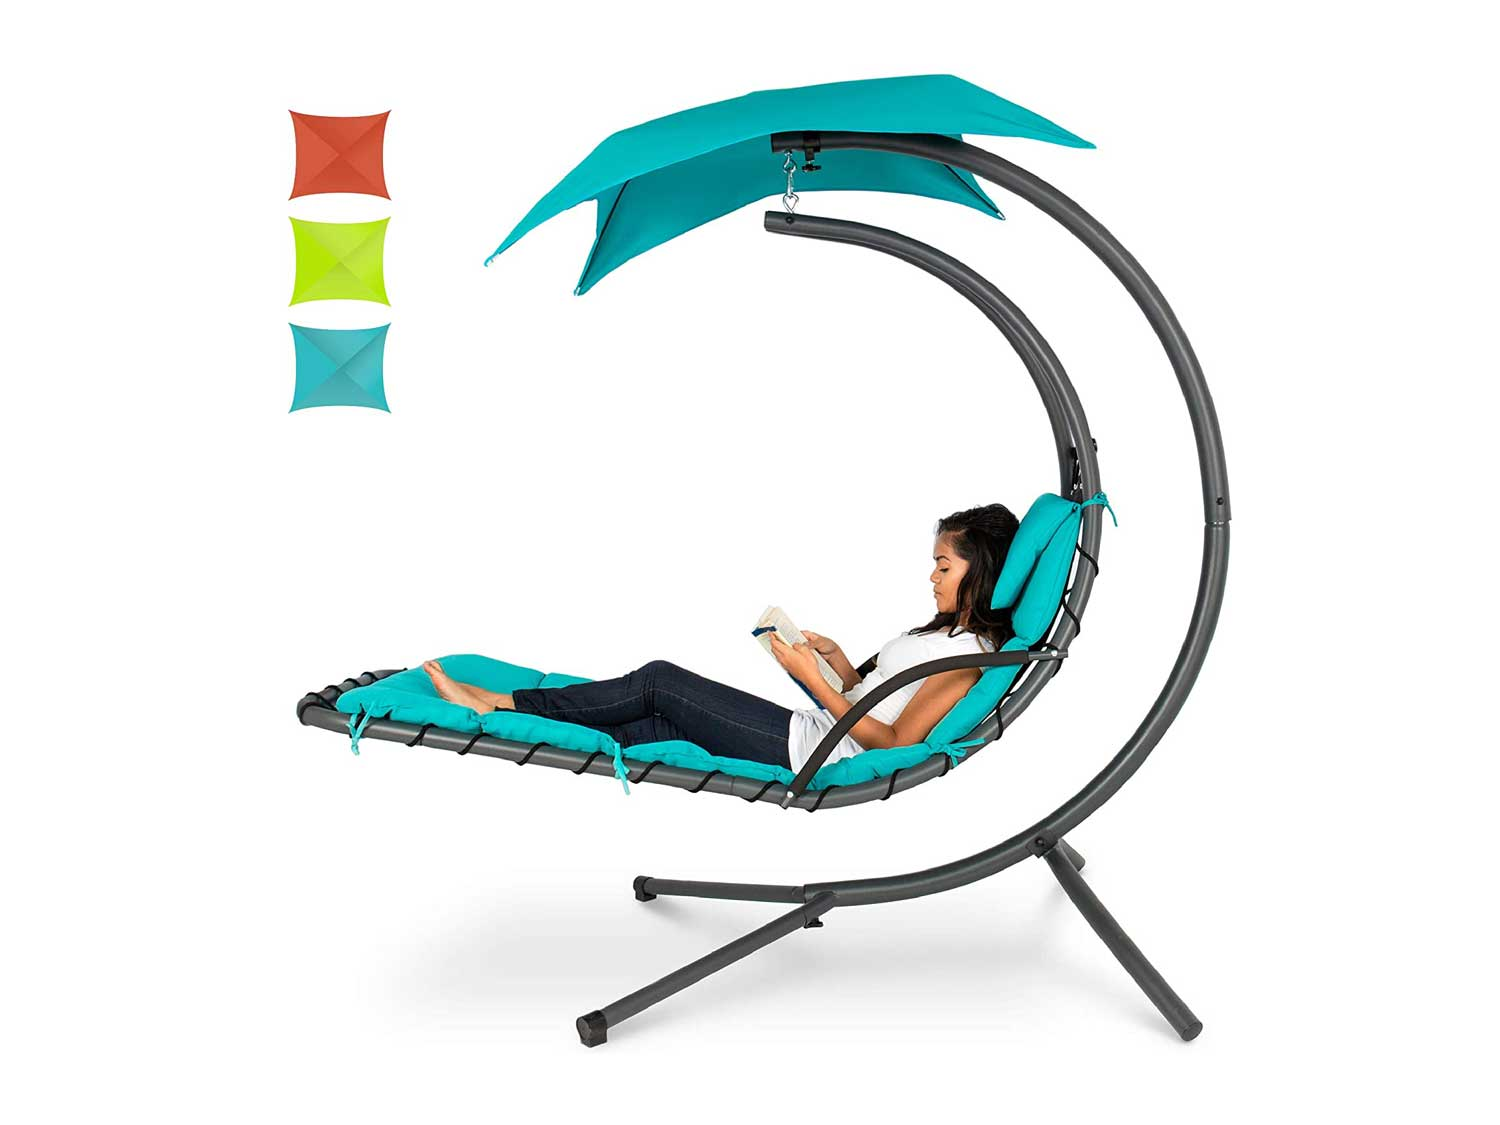 Best Choice Products Outdoor Hanging Curved Steel Chaise Lounge Chair Swing w/Built-in Pillow and Removable Canopy